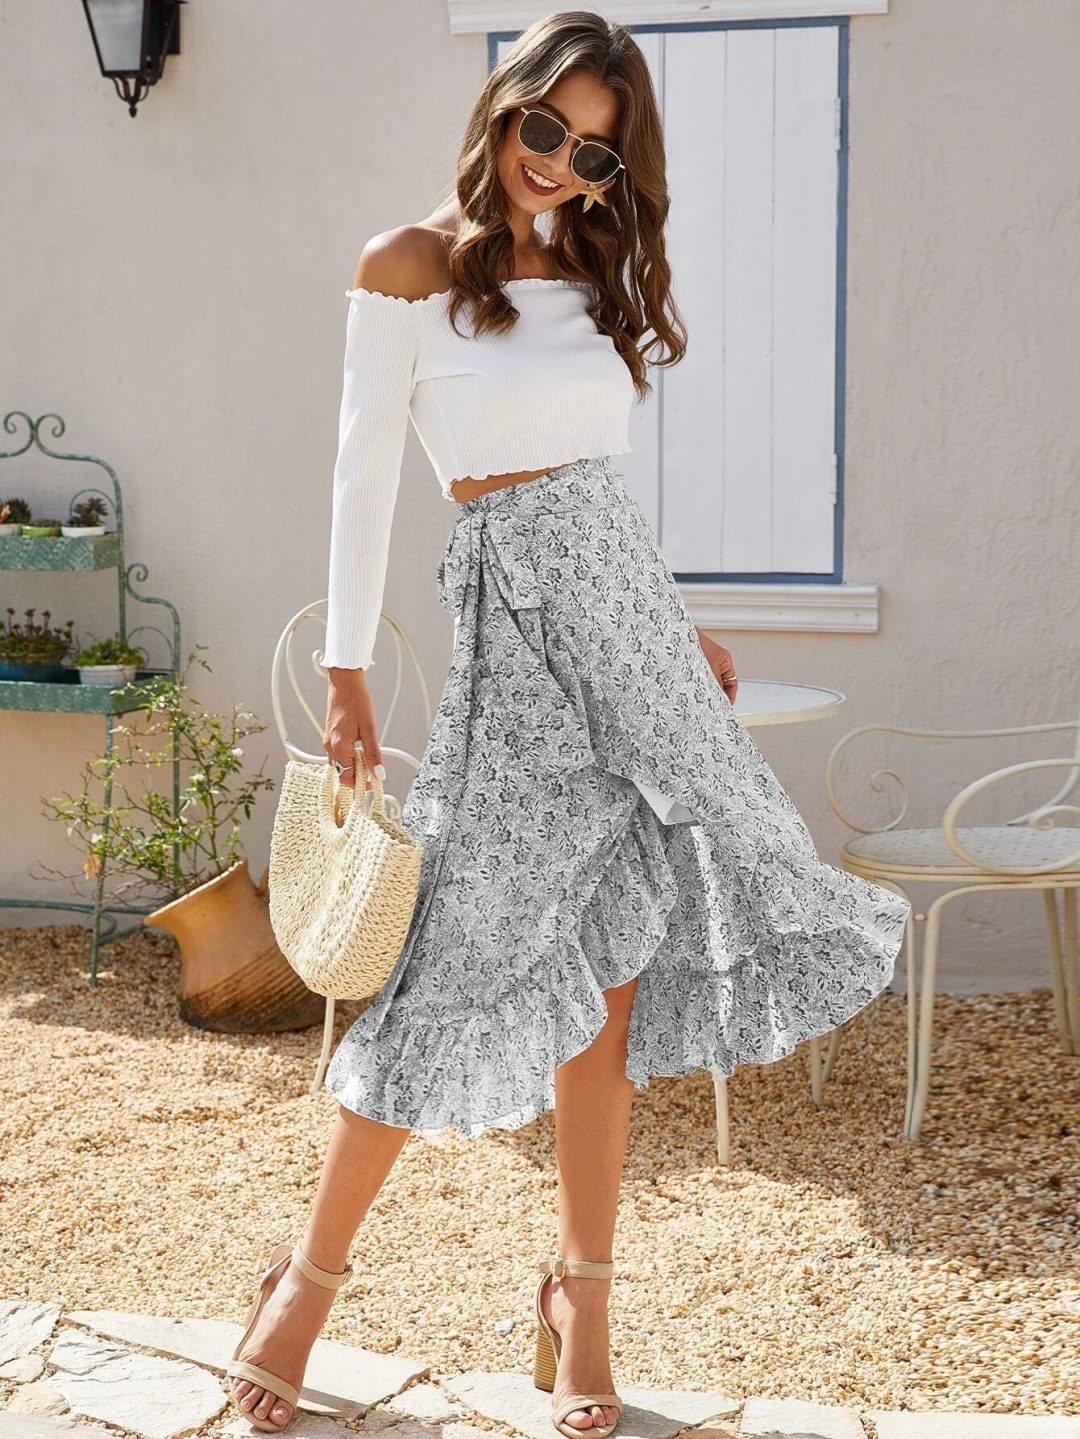 Blue flowy midi skirt with white crop top